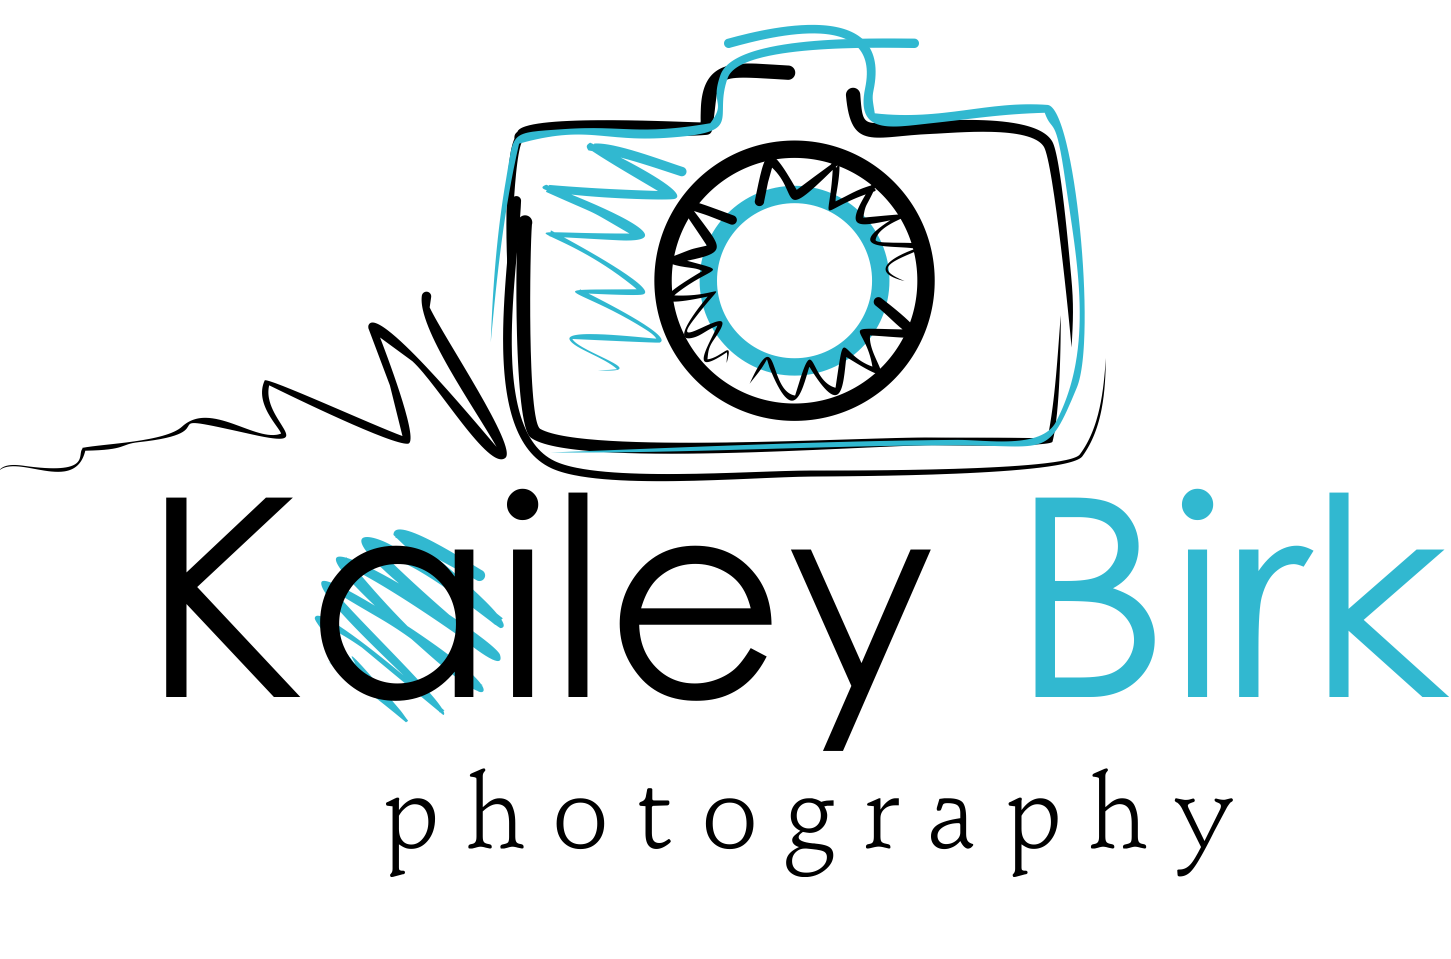 Kailey Birk Photography